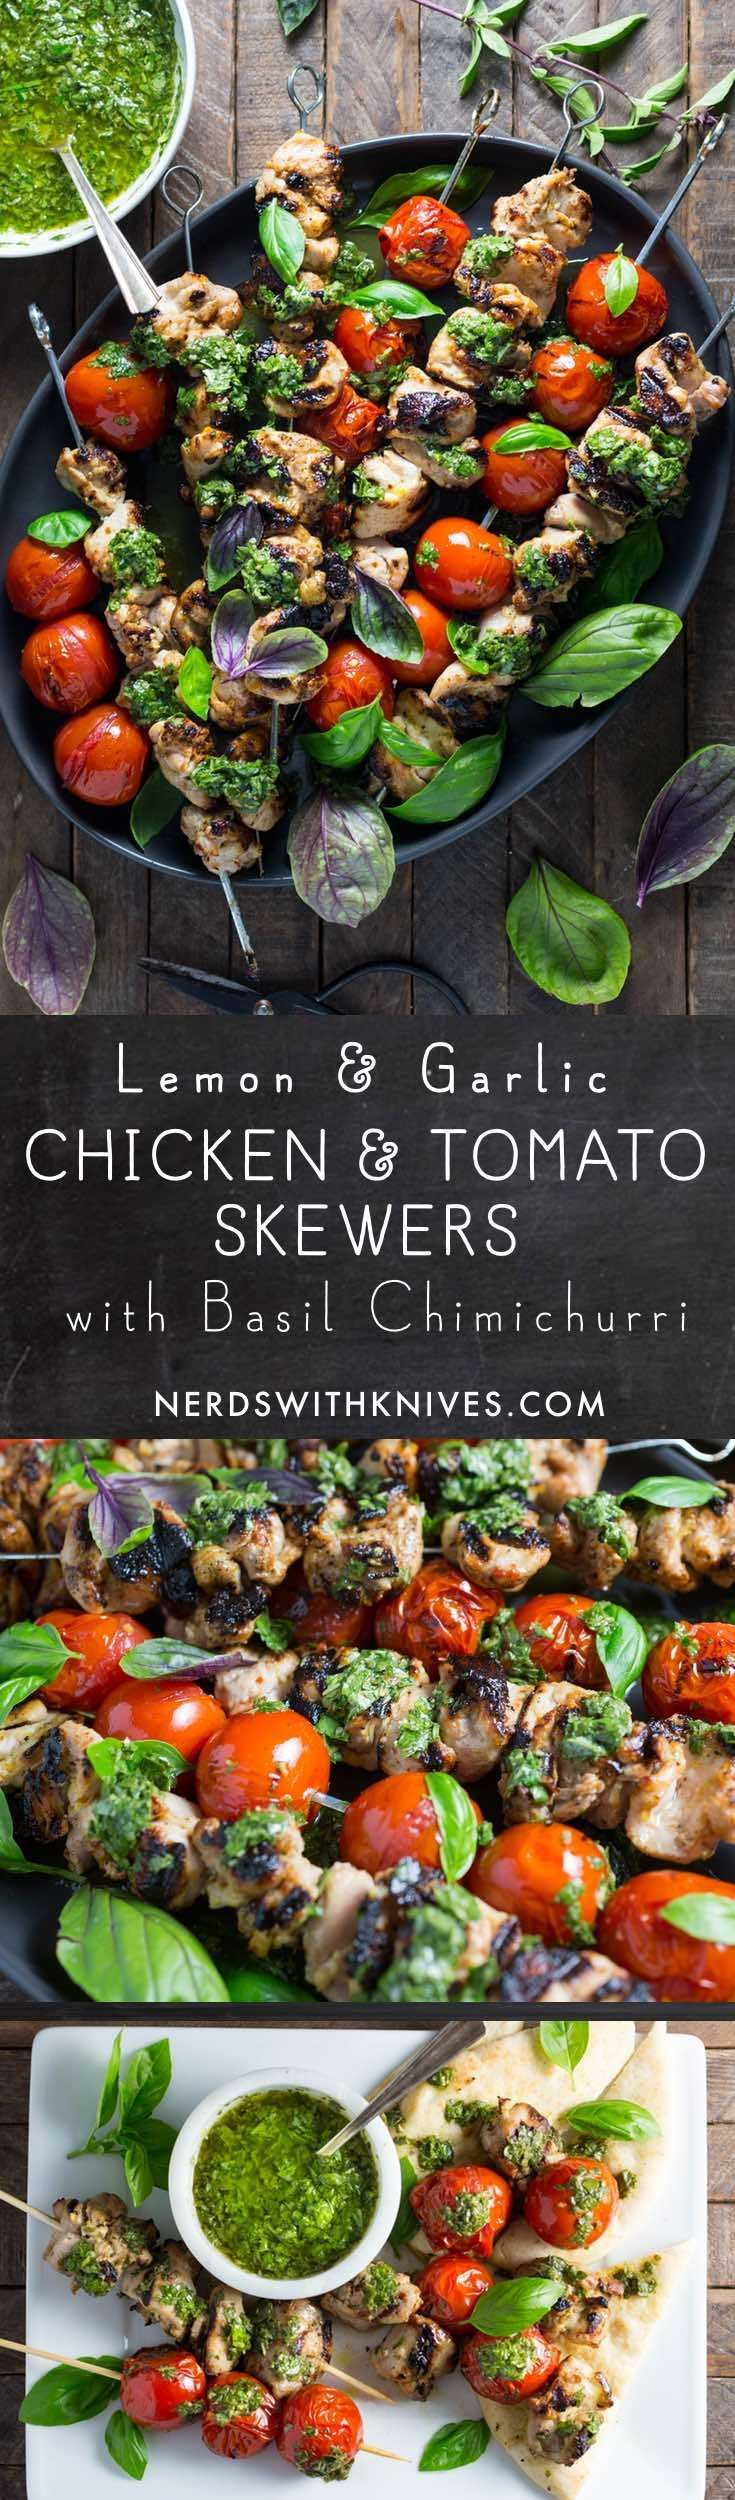 Grilled chicken doesn't always need a long marinade to be full of flavor. The hot chicken absorbs the flavor of the lemon-garlic marinade and basil chimichurri, and the grilled cherry tomatoes bring sweetness and acid.